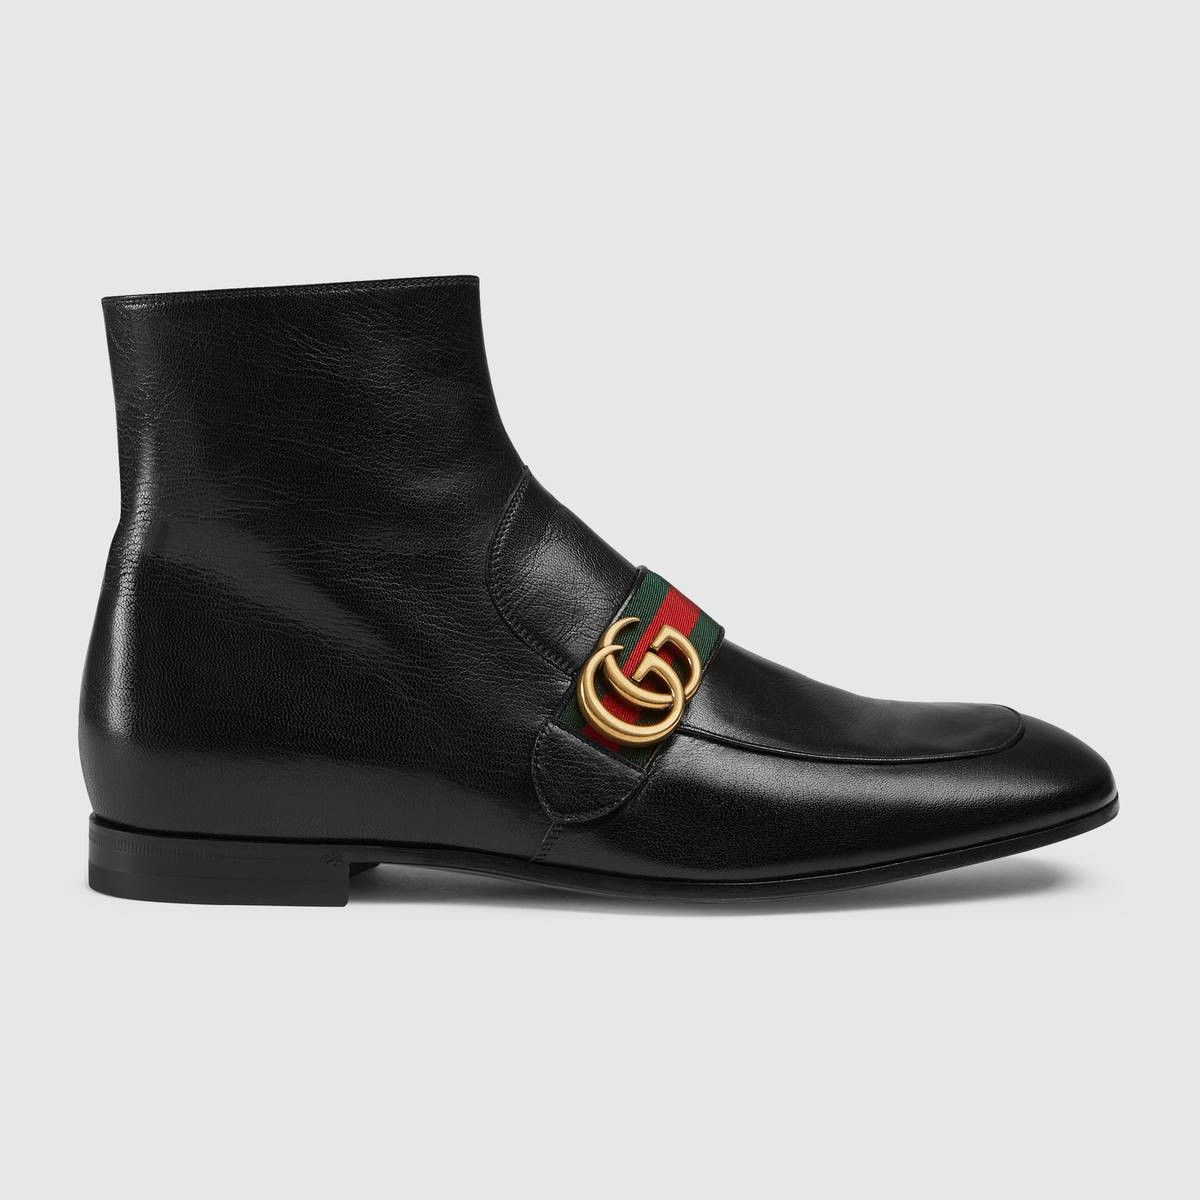 8fc85fcd8c6 GUCCI Leather Boot With Double G - Black Leather.  gucci  shoes  all ...